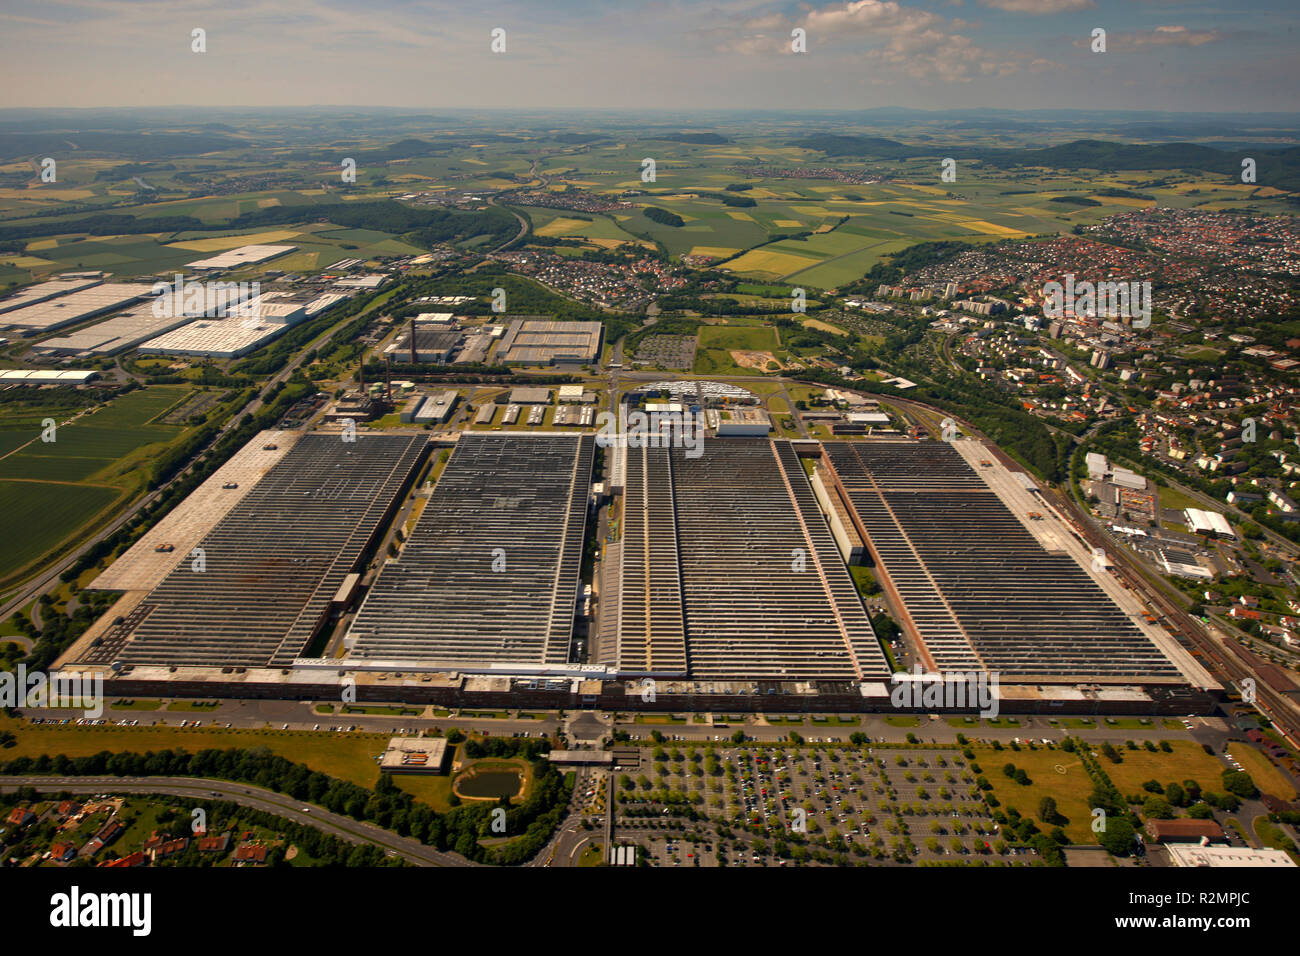 Aerial view, Volkswagen stock company Kassel plant Kassel Baunatal, automobile plant VW plant, automotive, aerial view, VW parking lot 4, Baunatal, Hesse, Germany, Europe, Stock Photo